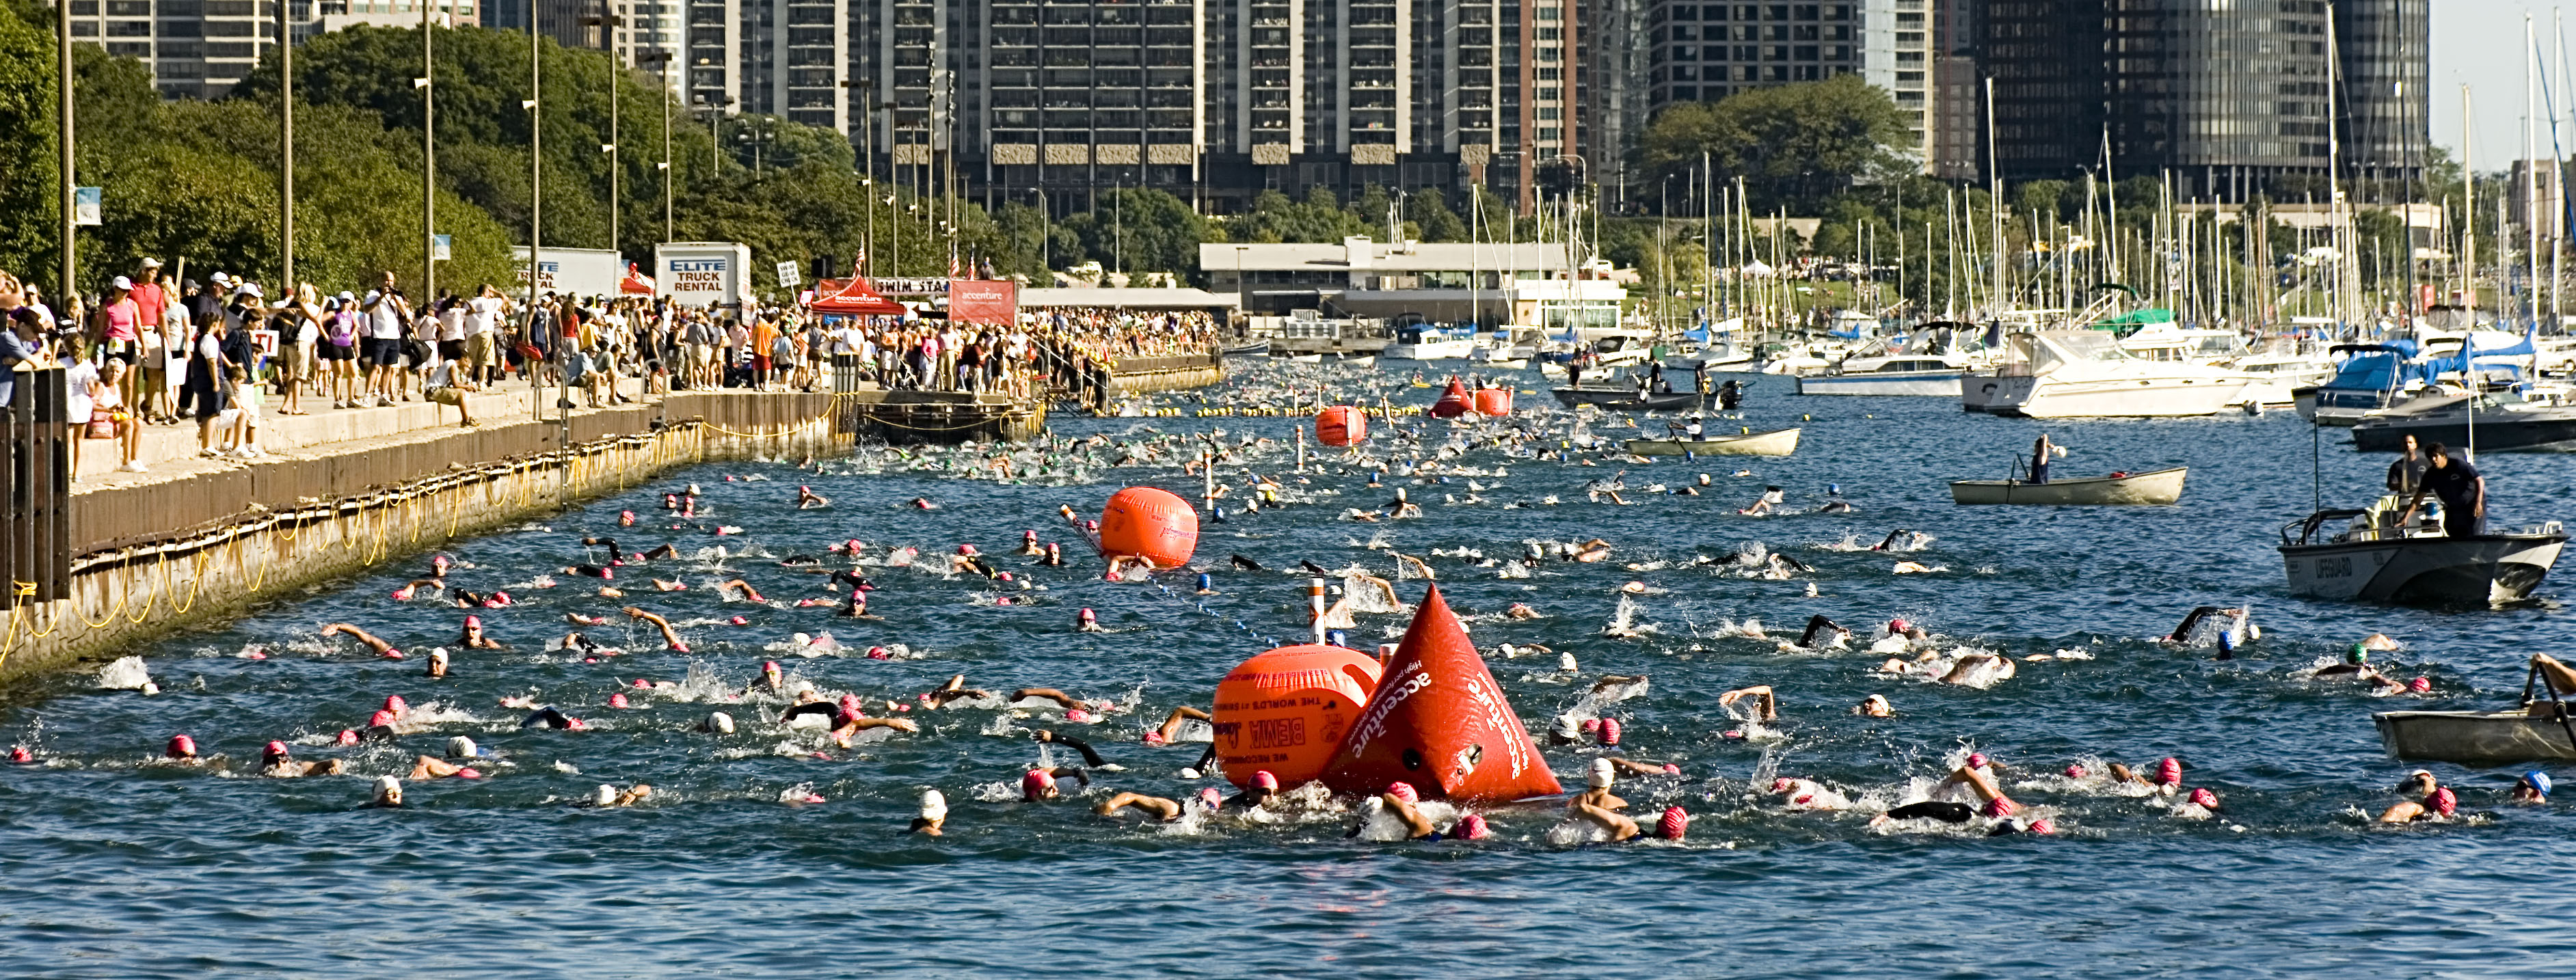 KM_5939_triathlon_swimmers